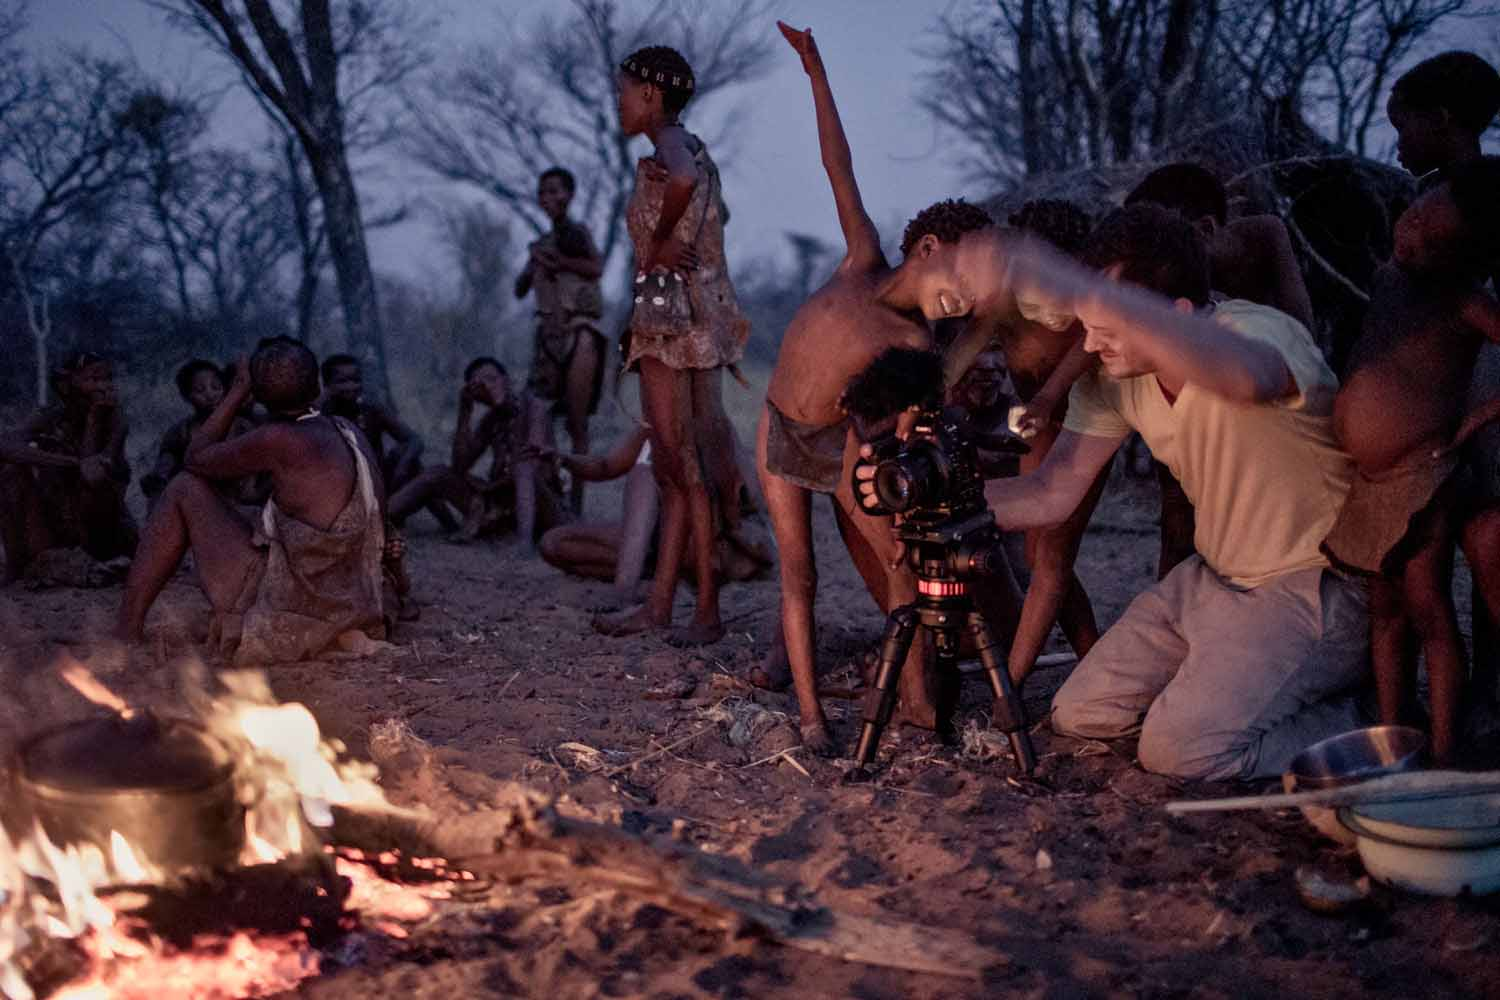 Patrick Moreau, of  Stillmotion , filming in Nambia for  #standwithme .